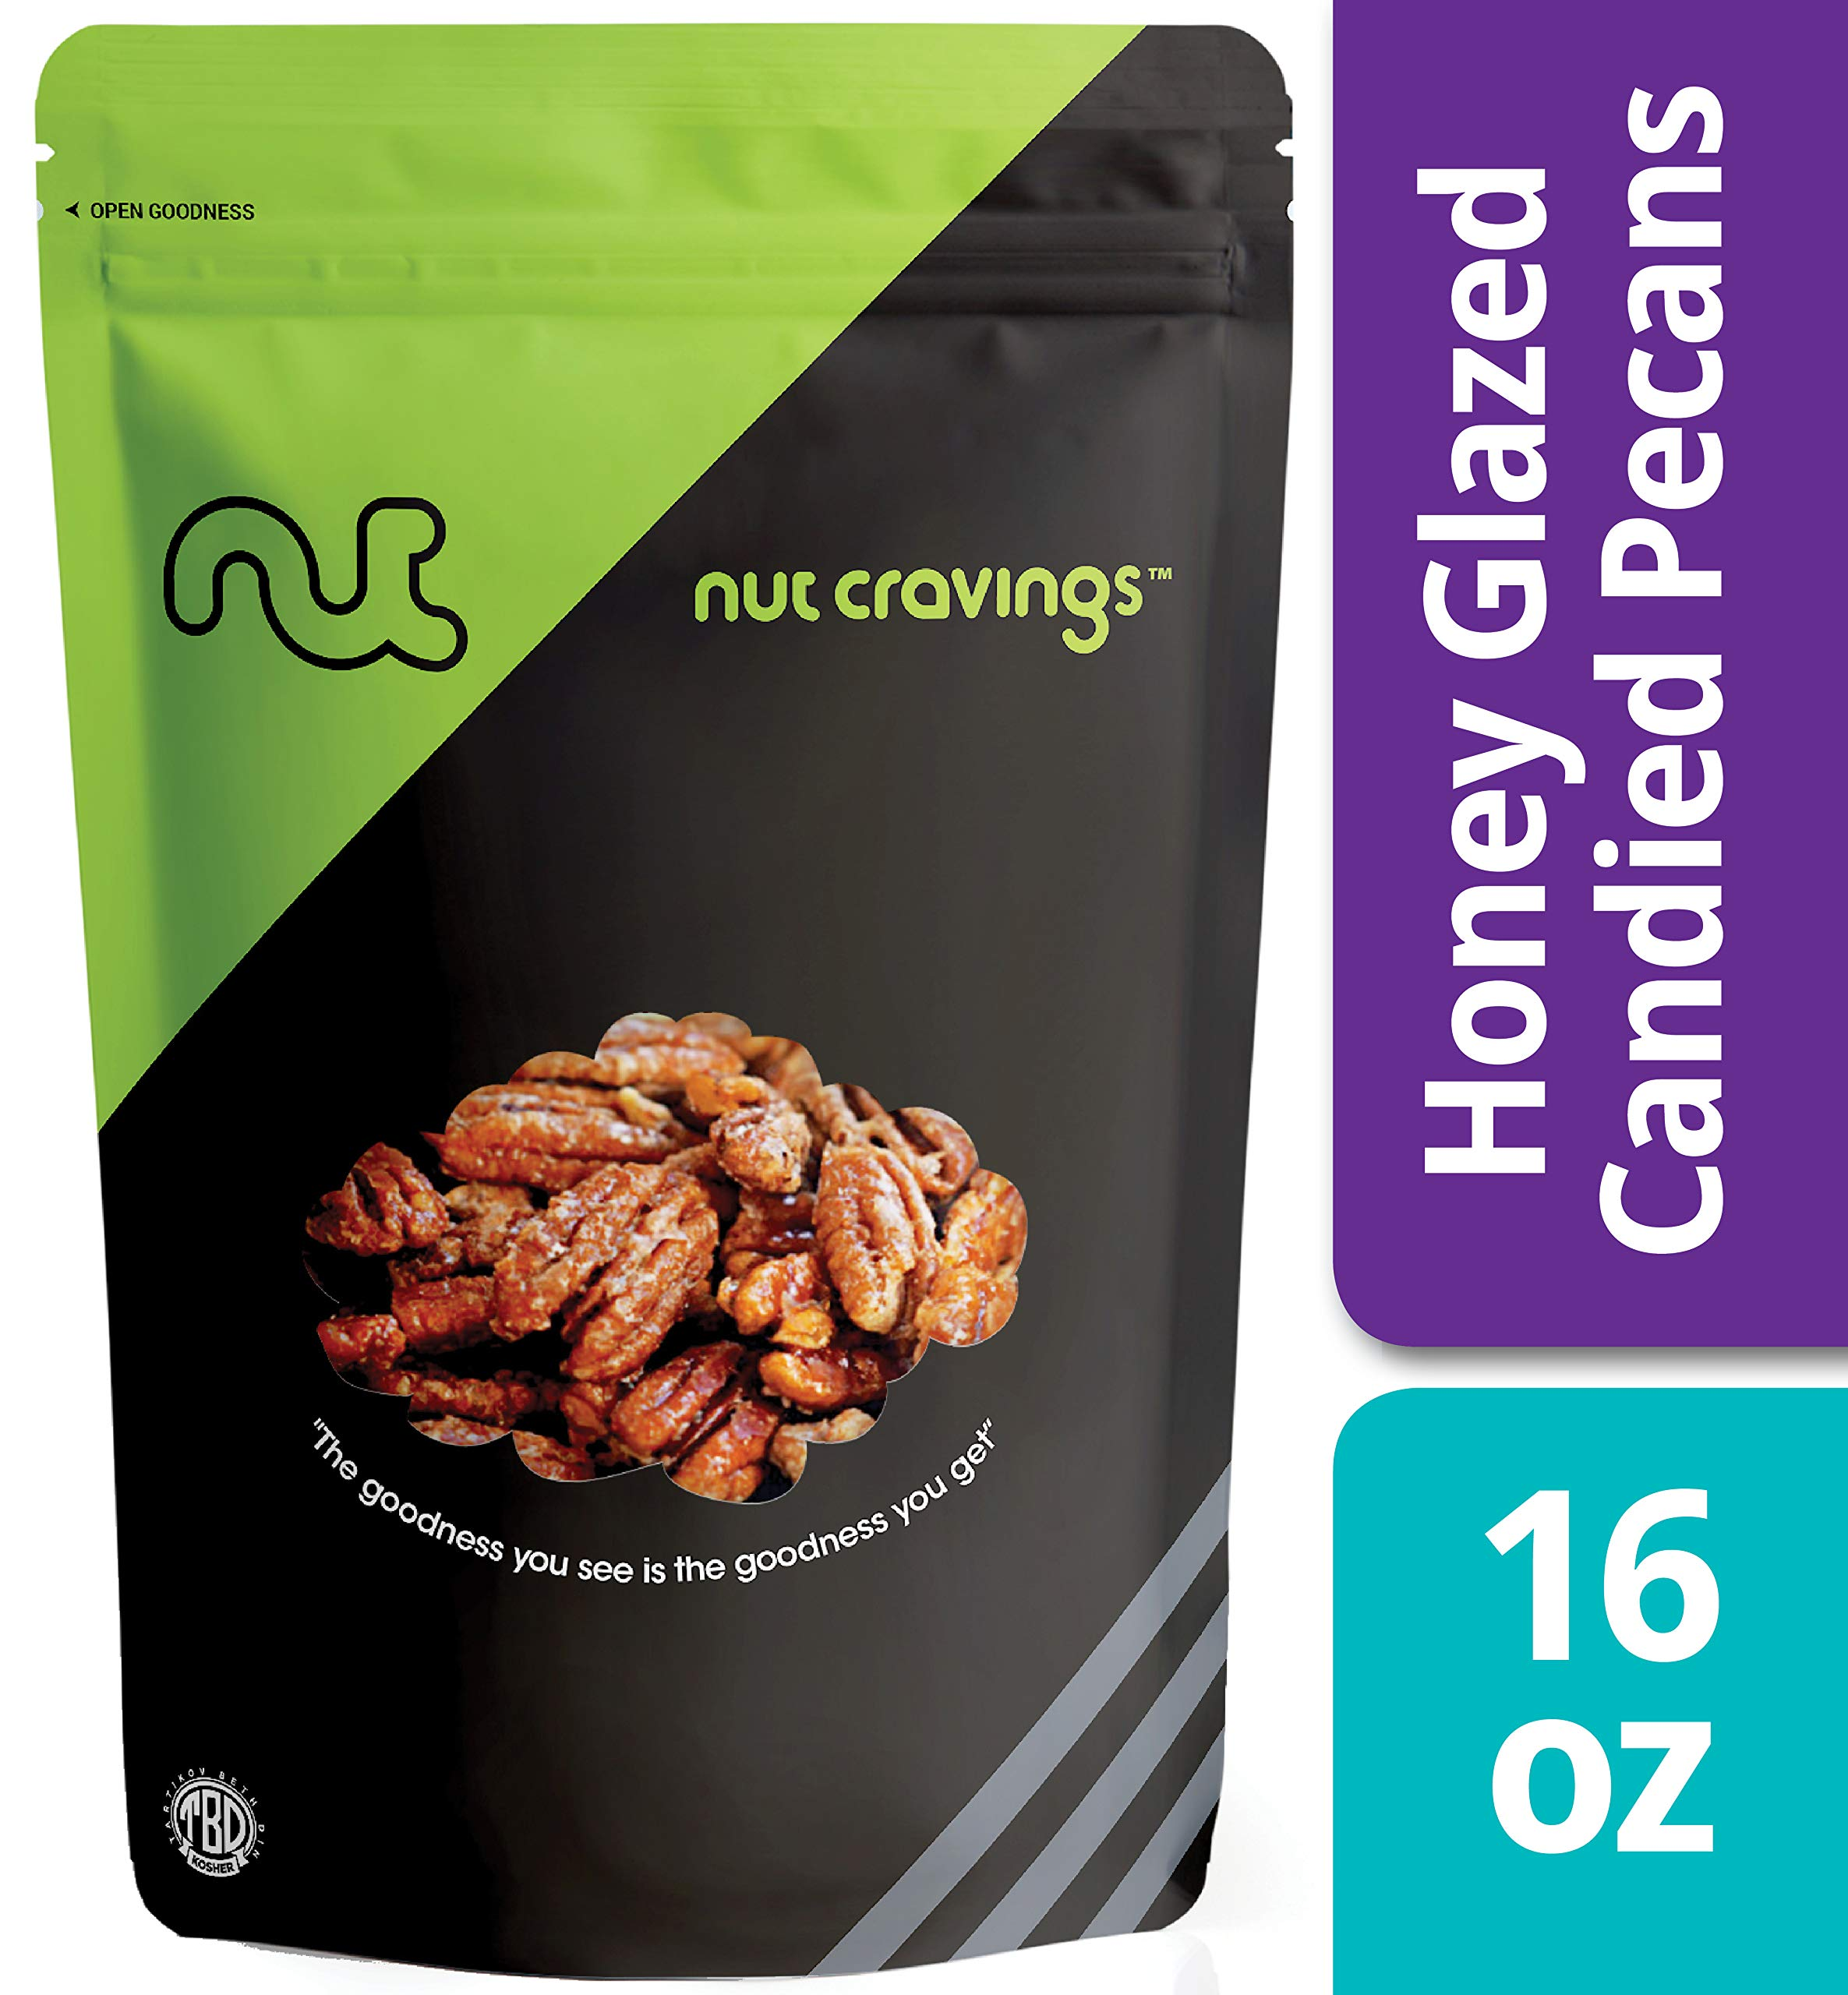 Nut Cravings - Fresh Honey Glazed Candied Pecans (1 Pound) - In Resealable Bag - 16 Ounce